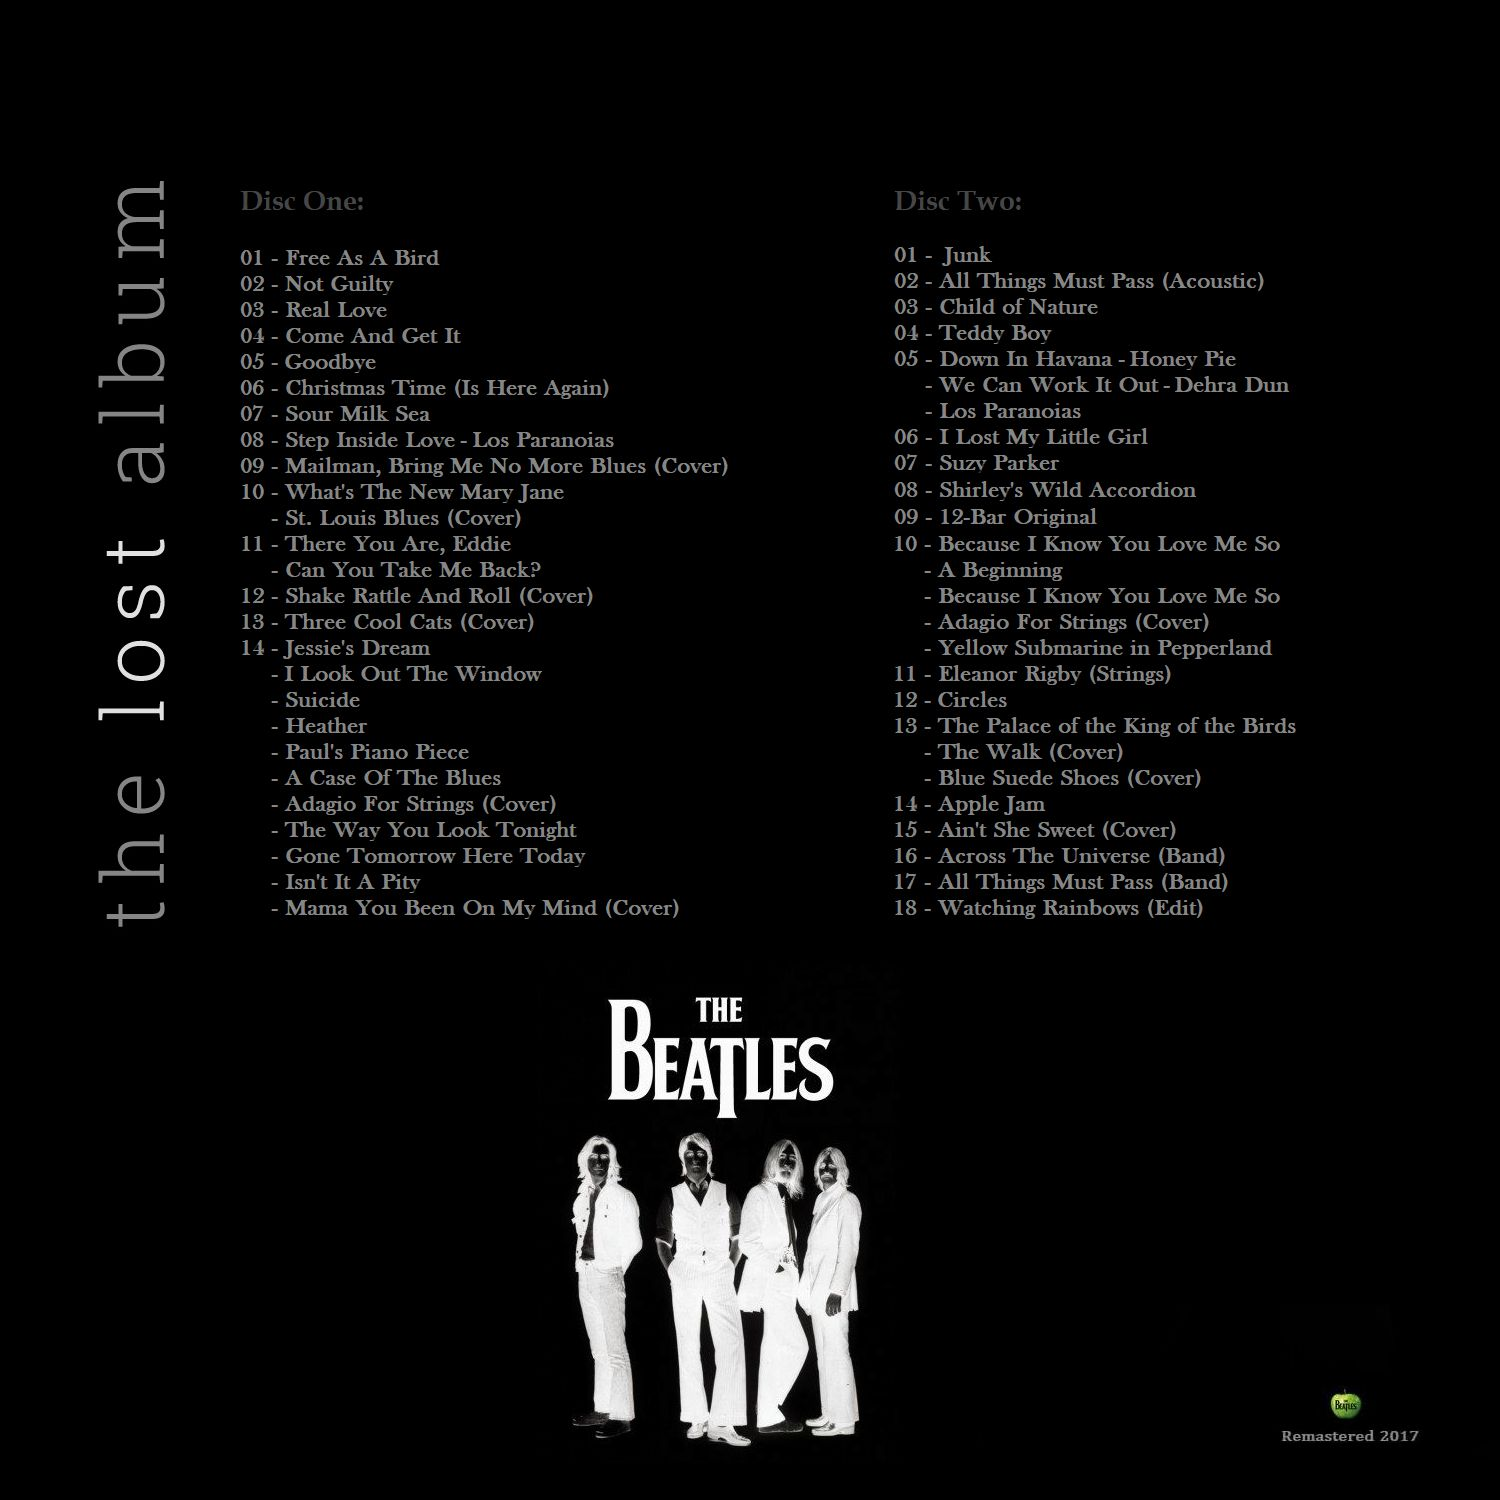 RELIQUARY: Beatles, The - The Lost Album (6CD Box Set 2017) [SBD]